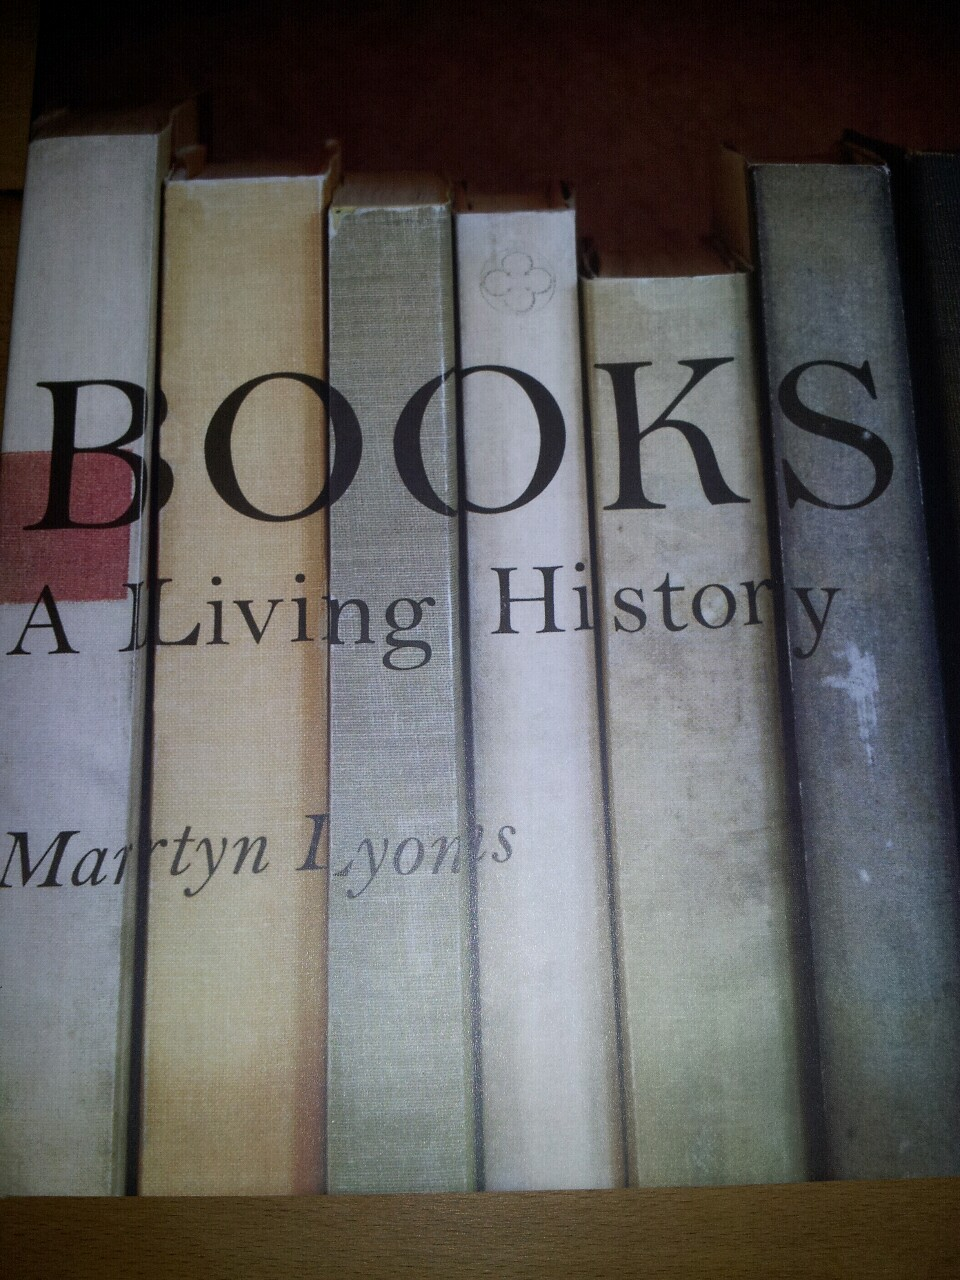 This is a beautiful book, a great addition for bibliophiles. However, it's very western centric with occasional mention of Russian and Japanese print media. Disappointing but not surprising. I would love to see an additional volume that draws from wider examples.